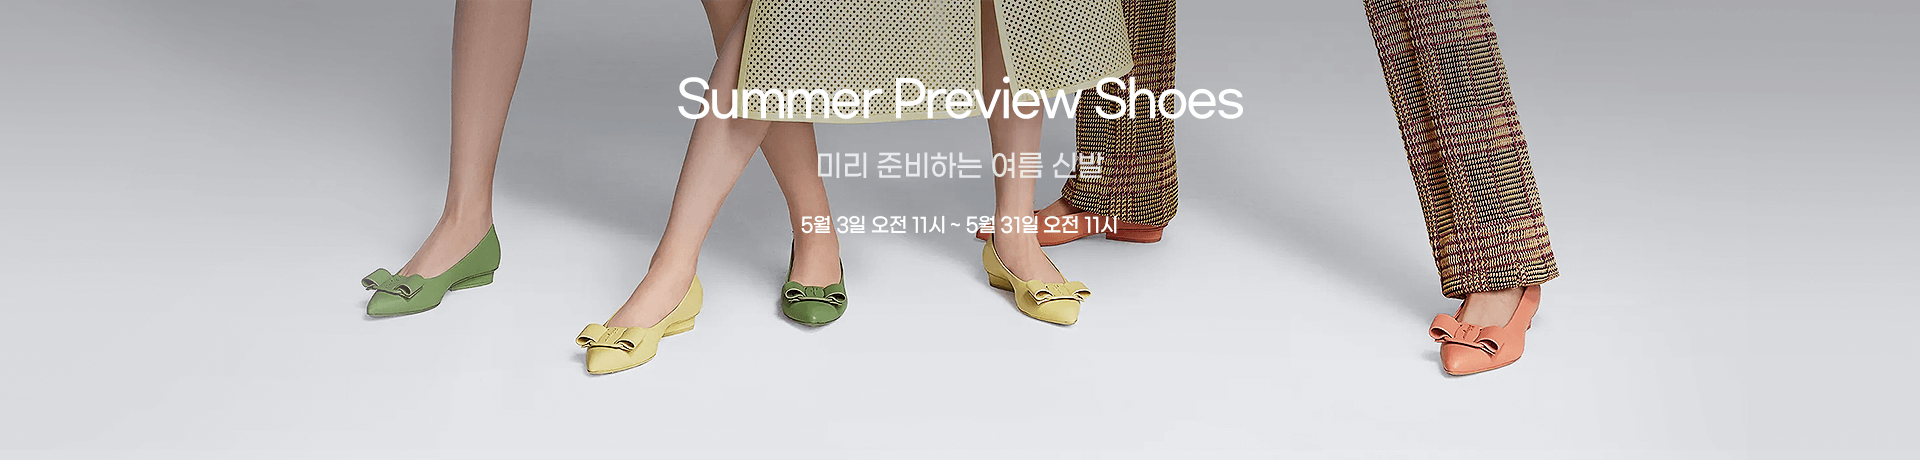 210503_yh_summer-preview-shoes_pc_e9eaed